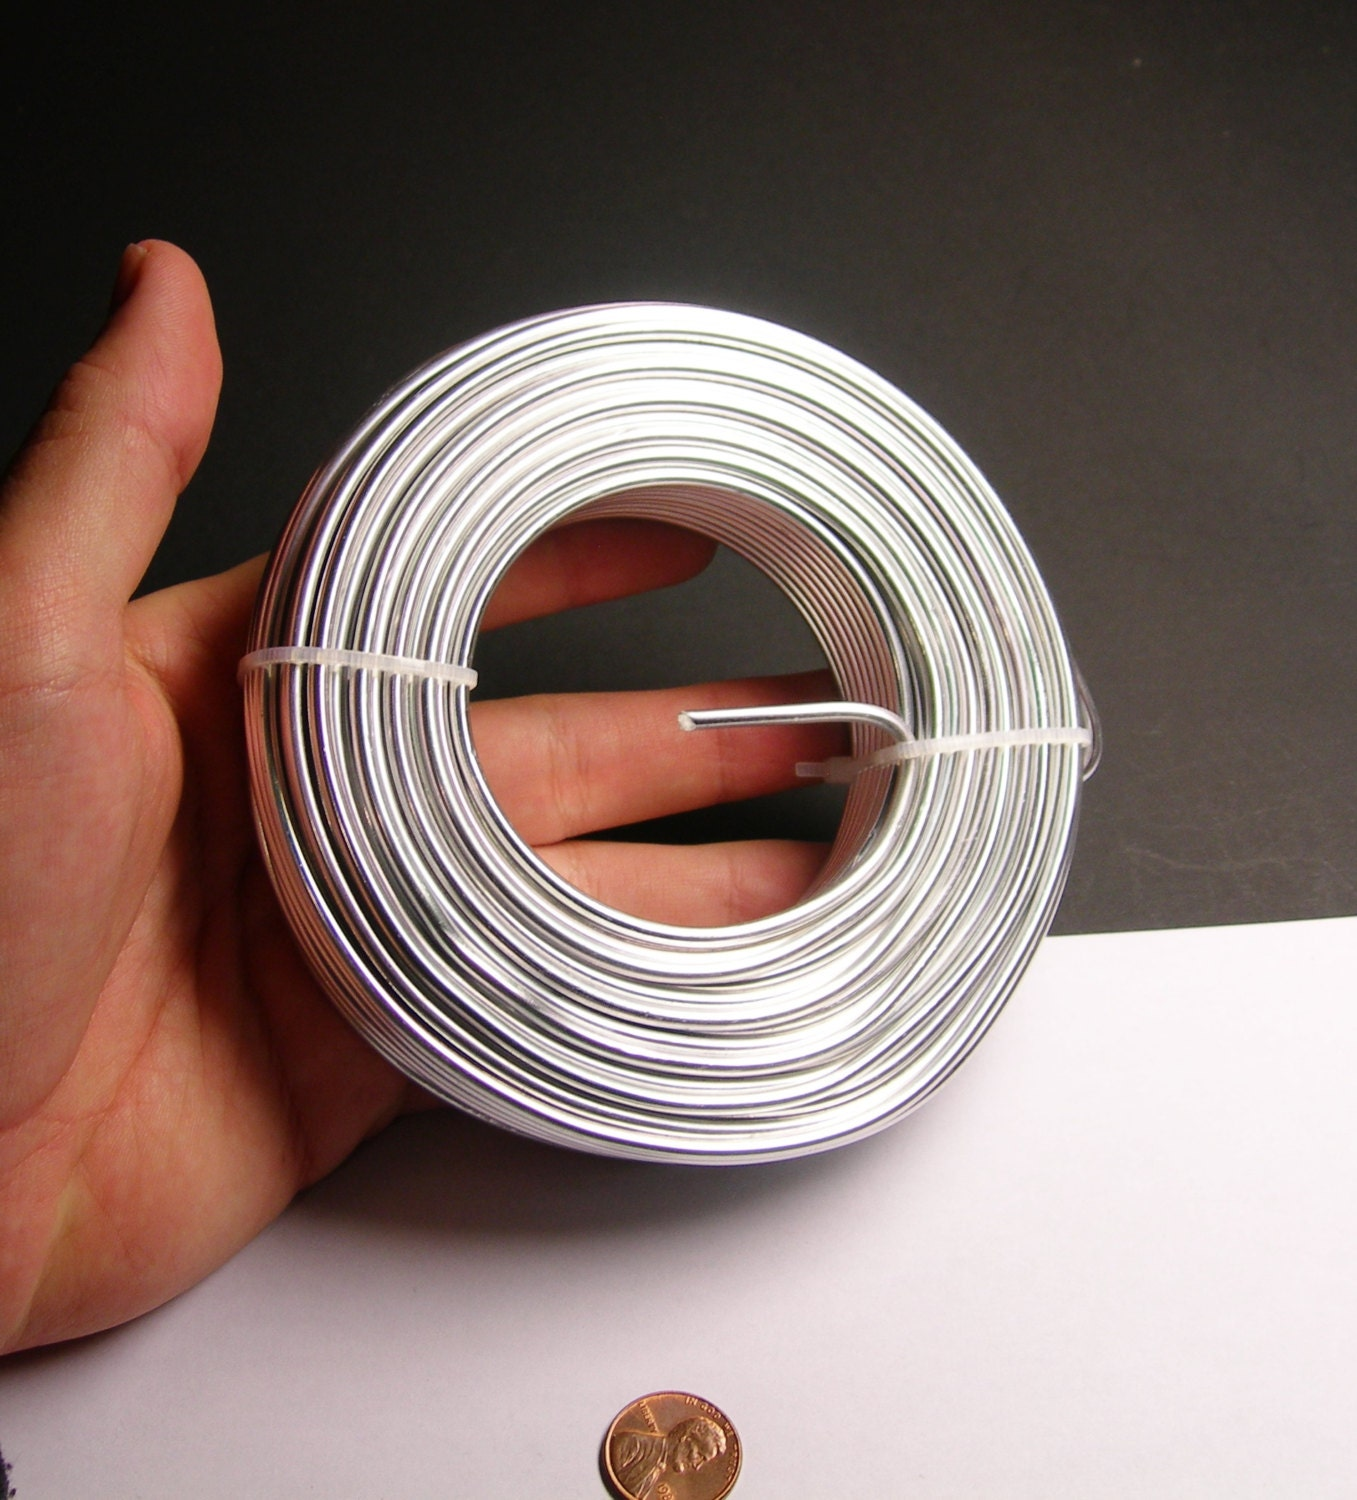 Aluminum wire 9 gauge 3mm 78 foot rool good quality silver aluminum wire 9 gauge 3mm 78 foot rool good quality silver anodized wire 24 meters keyboard keysfo Gallery